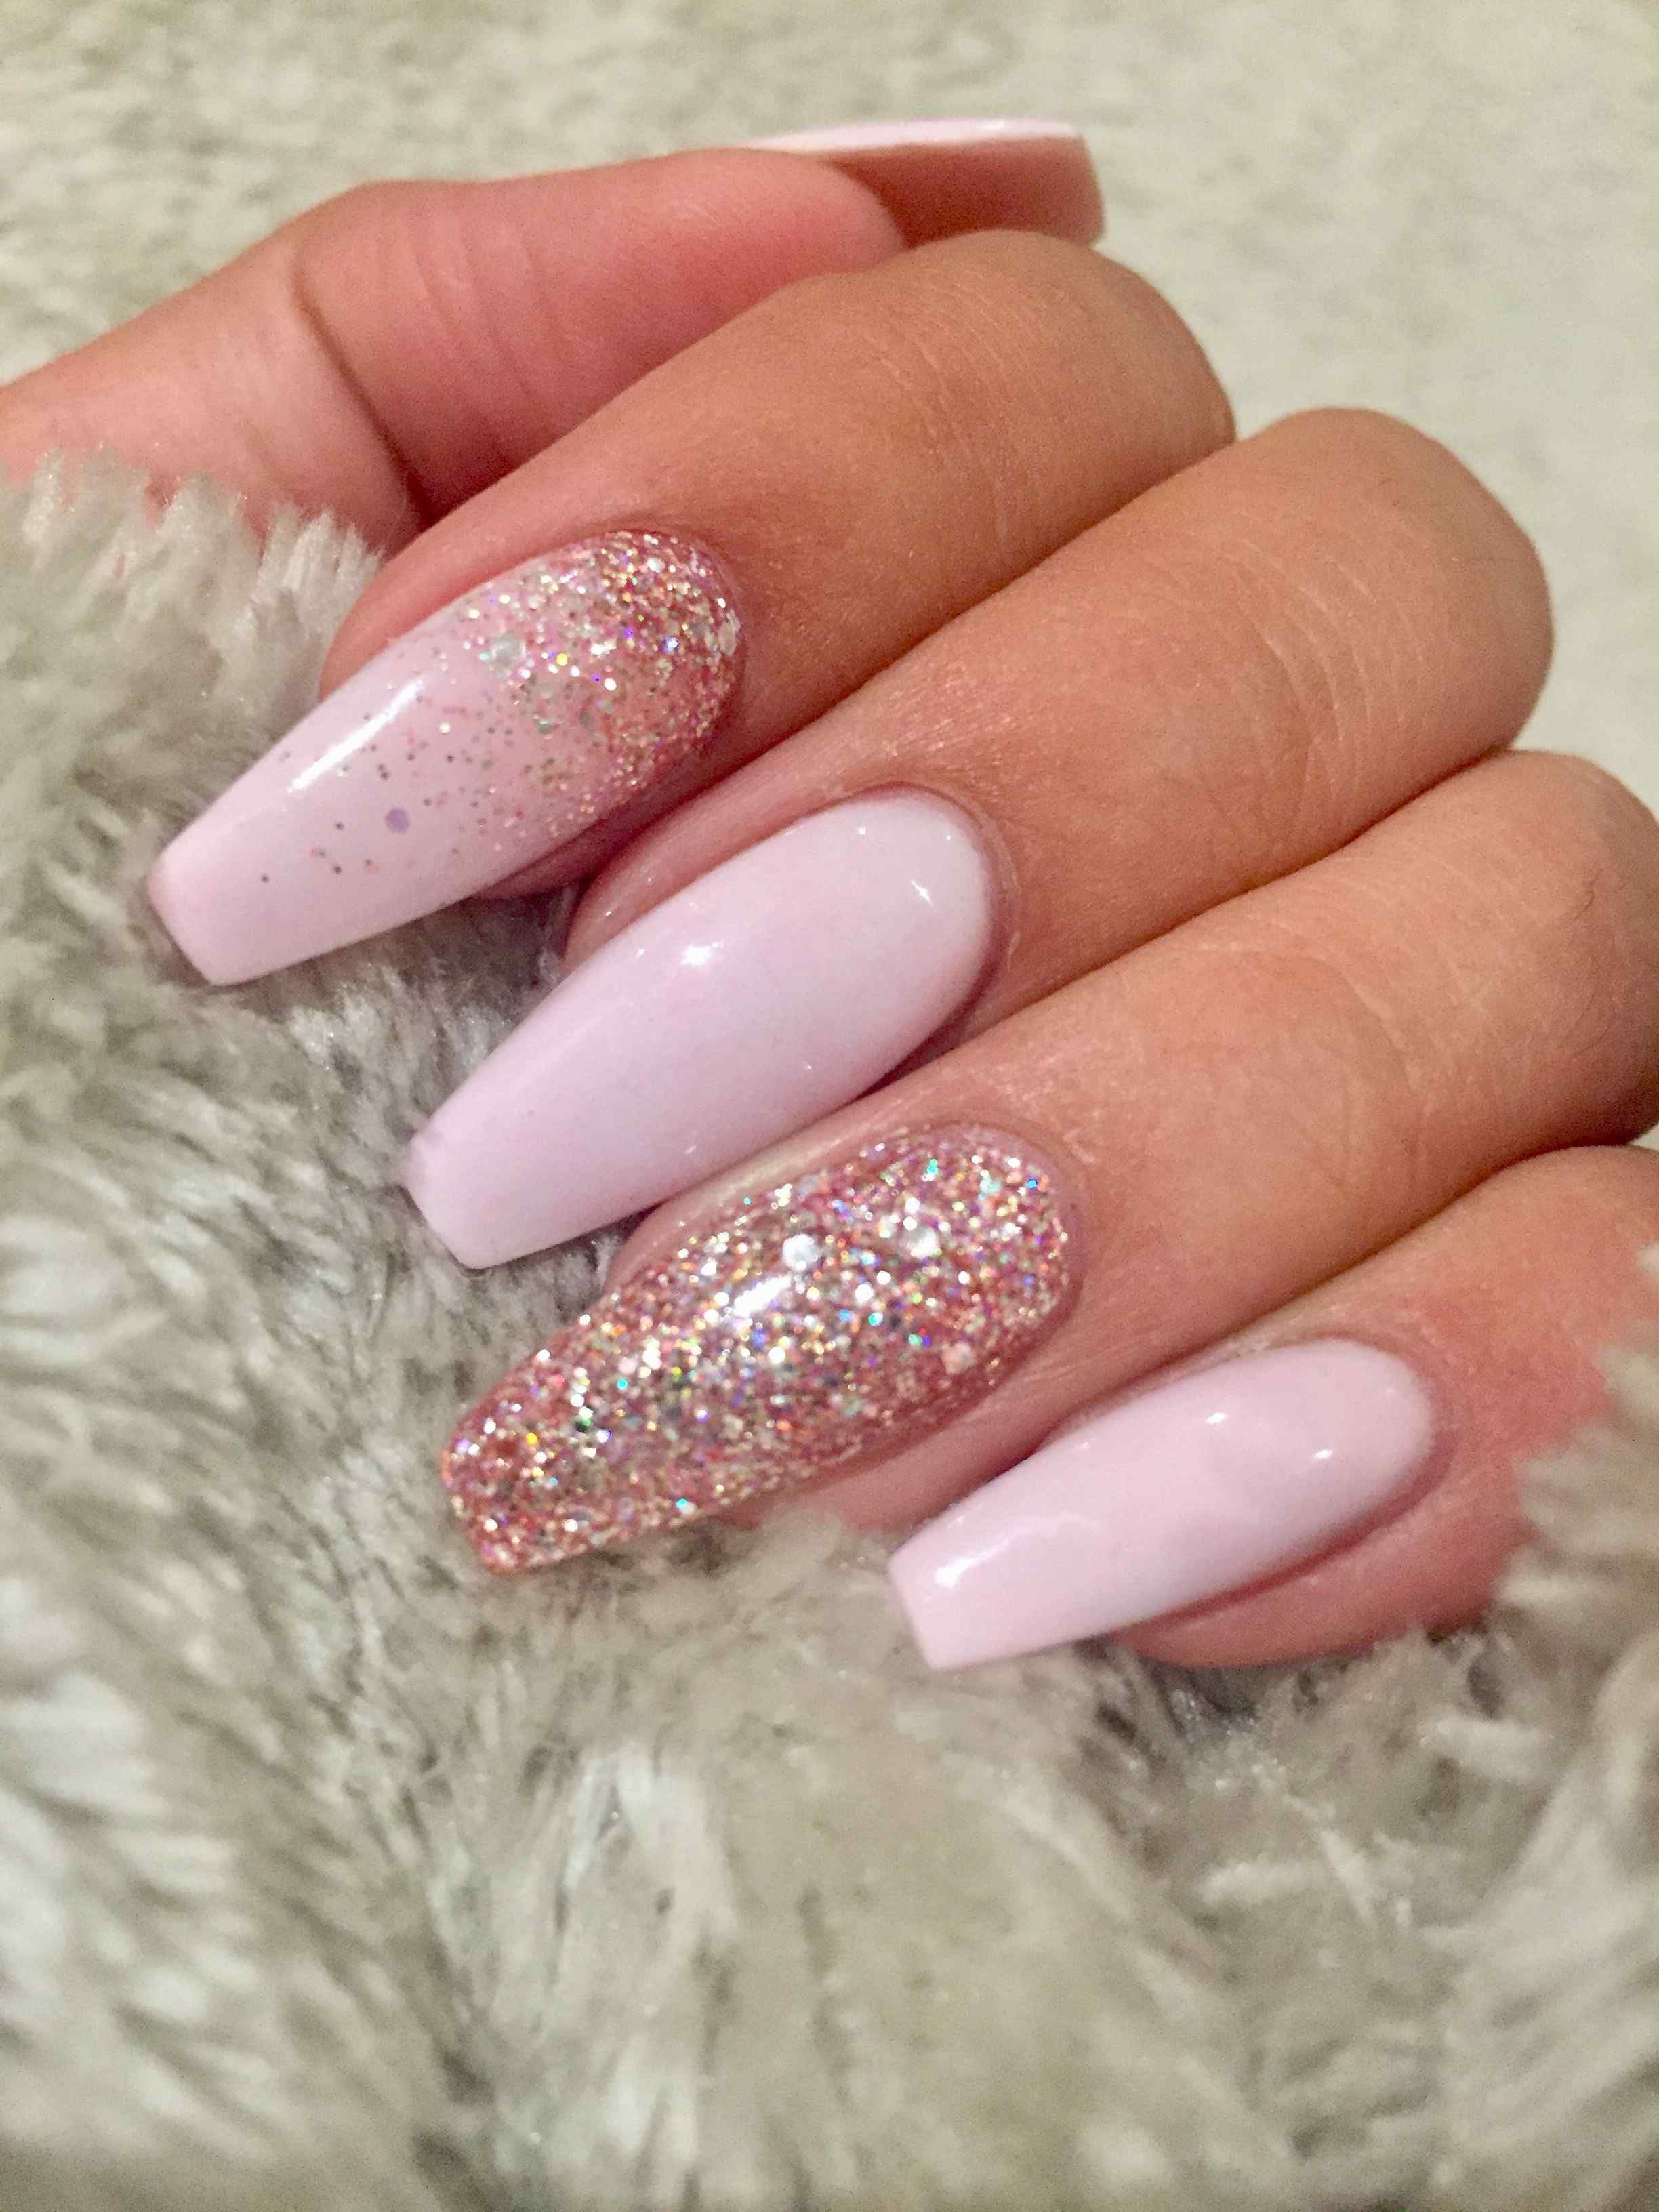 Image Result For Coffin Nails Short Light Pink Acrylic Nails Nails Design With Rhinestones Pretty Nail Designs Acrylics